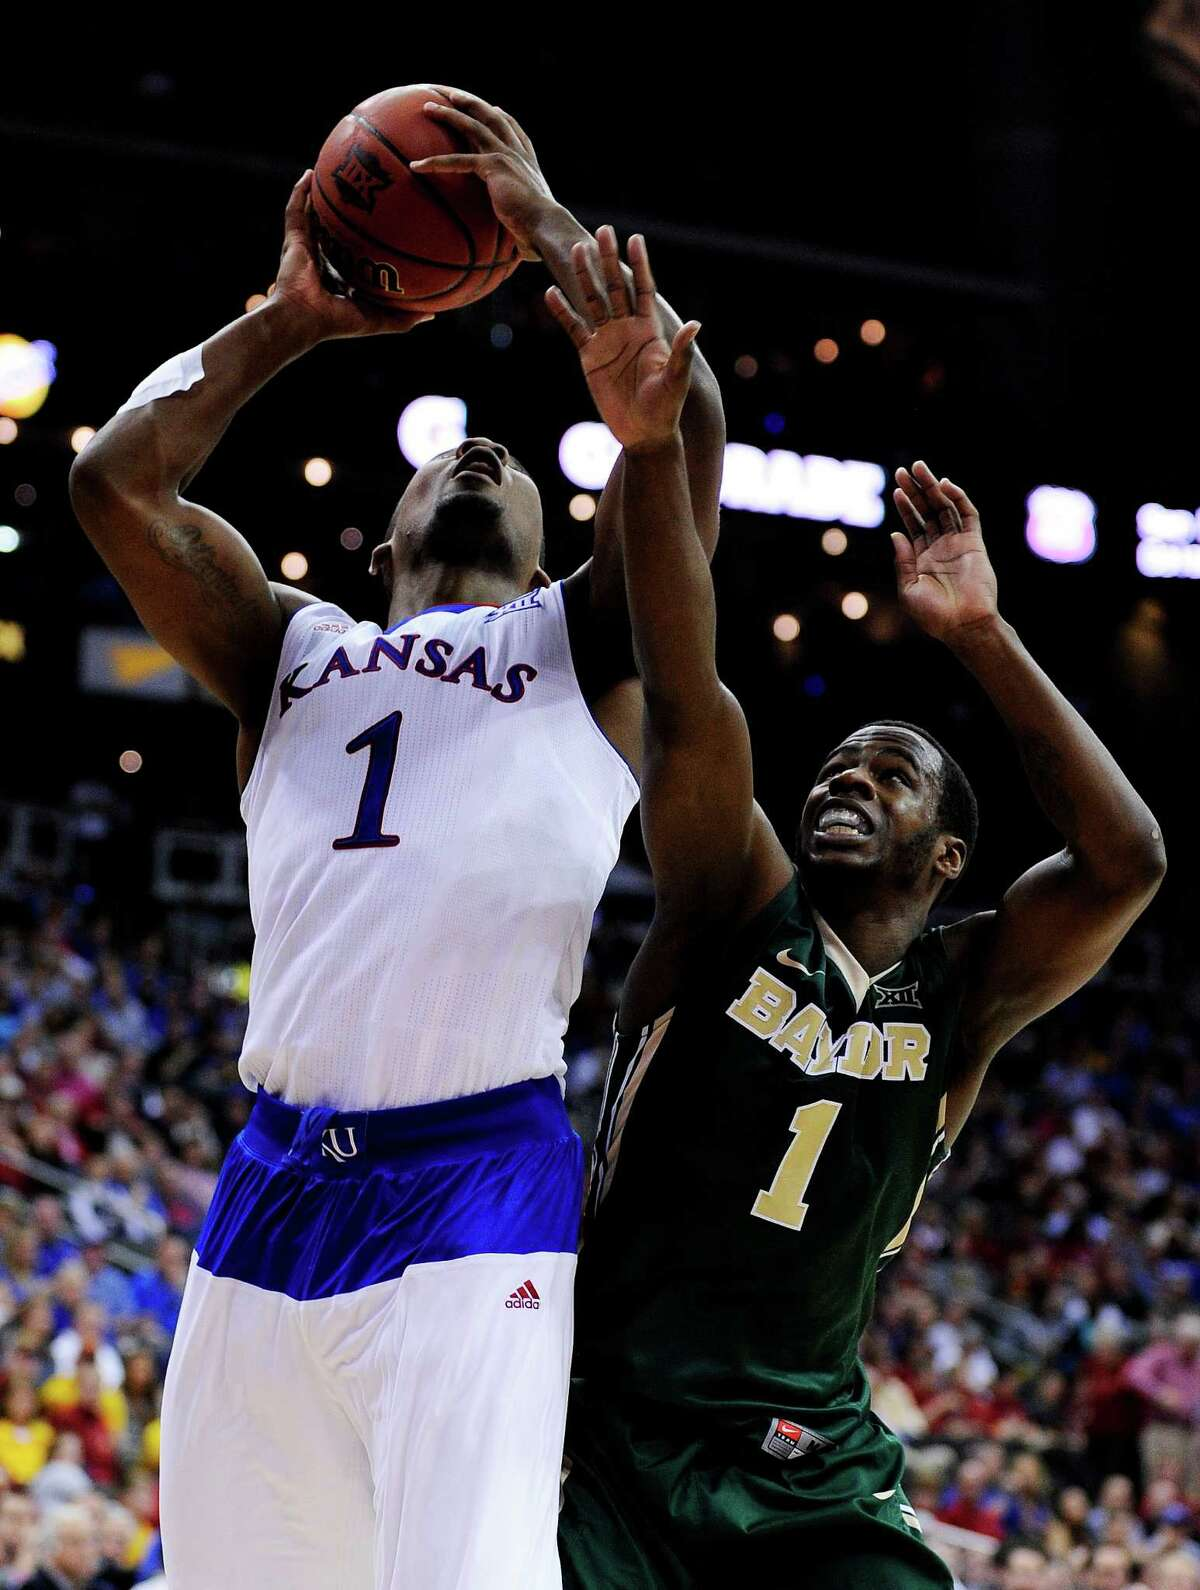 KANSAS CITY, MO - MARCH 13: Wayne Selden Jr. #1 of the Kansas Jayhawks goes up against Kenny Chery #1 of the Baylor Bears in the second half during a semifinal game of the 2015 Big 12 Basketball Tournament at Sprint Center on March 13, 2015 in Kansas City, Missouri. (Photo by Ed Zurga/Getty Images)